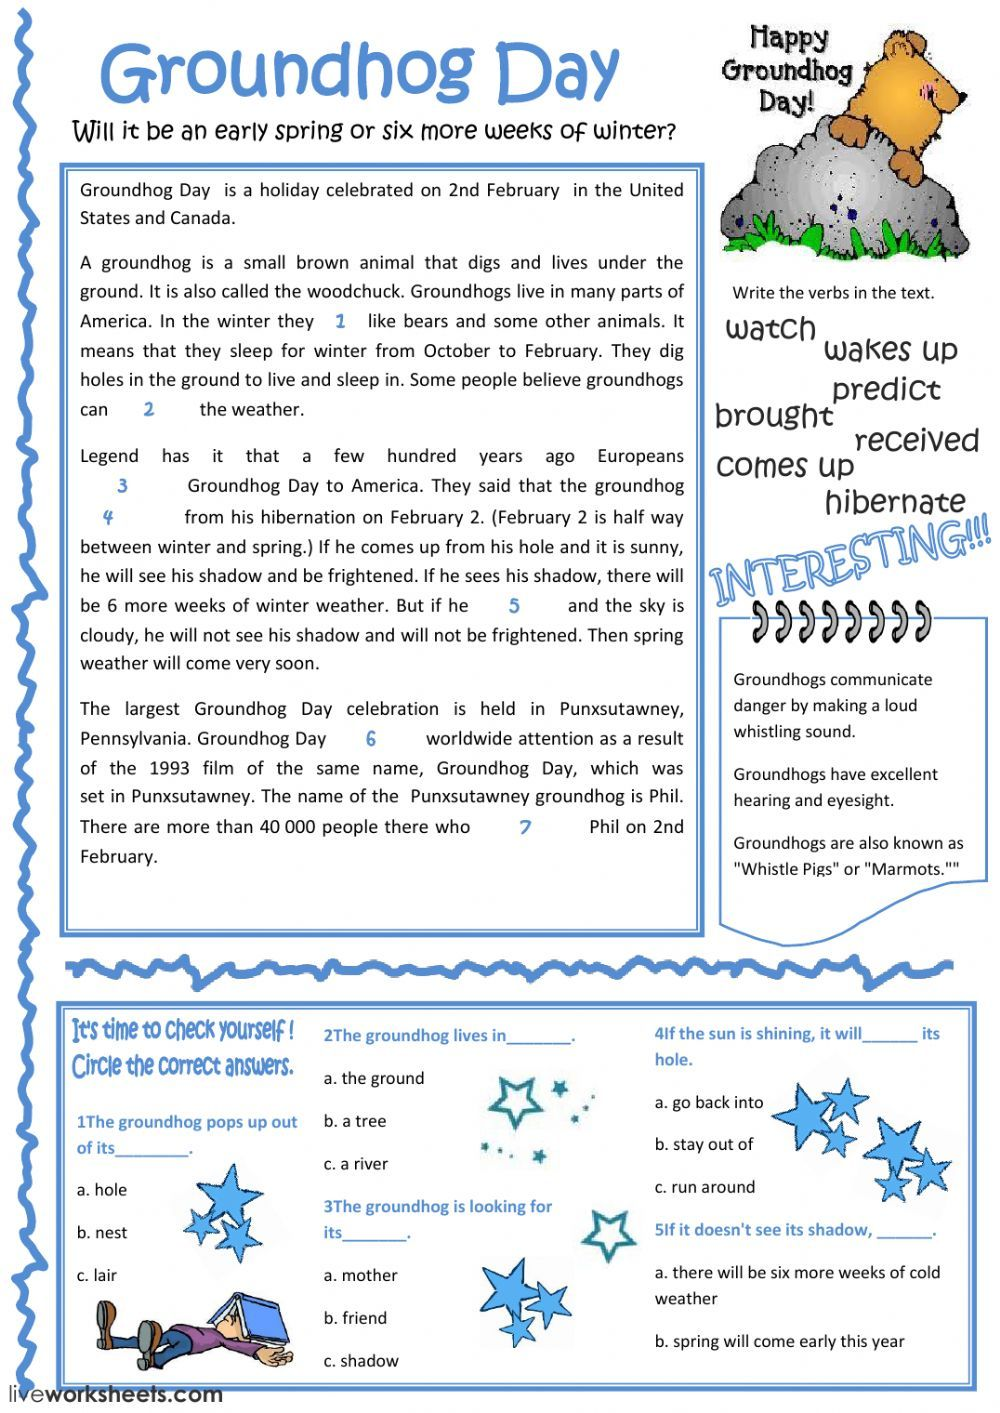 Reading Comprehension Interactive And Downloadable Worksheet You Can Do The Exercises Online Or Esl Reading Comprehension Groundhog Day Reading Comprehension [ 1413 x 1000 Pixel ]